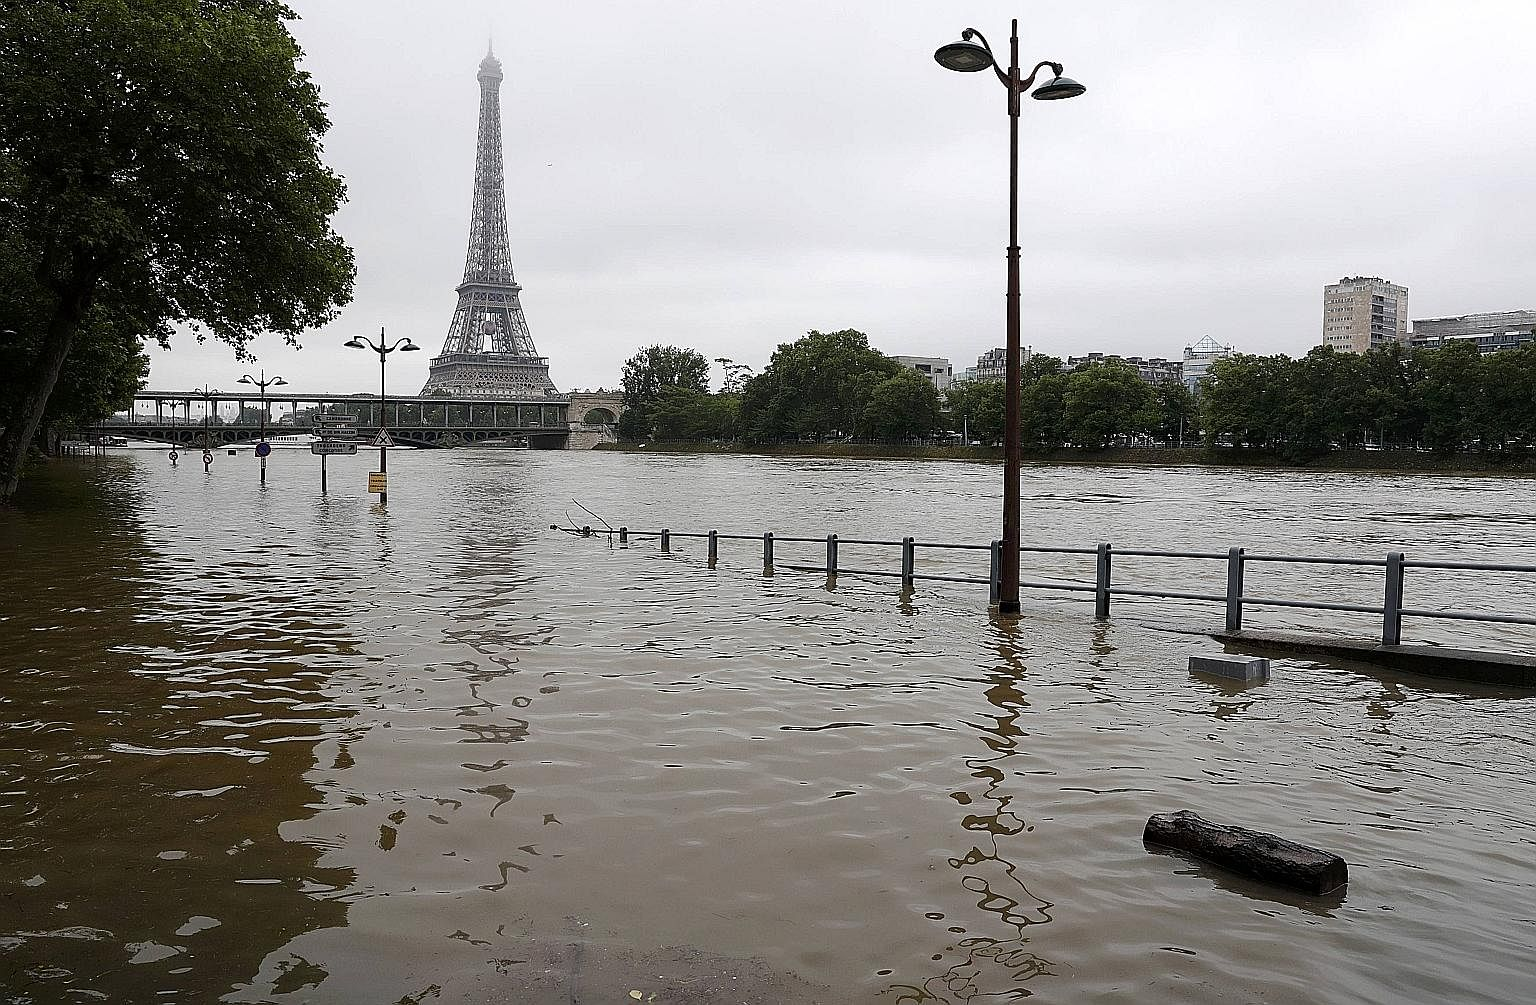 14 dead as floods cause havoc across Europe, Europe News & Top Stories - The Straits Times. death